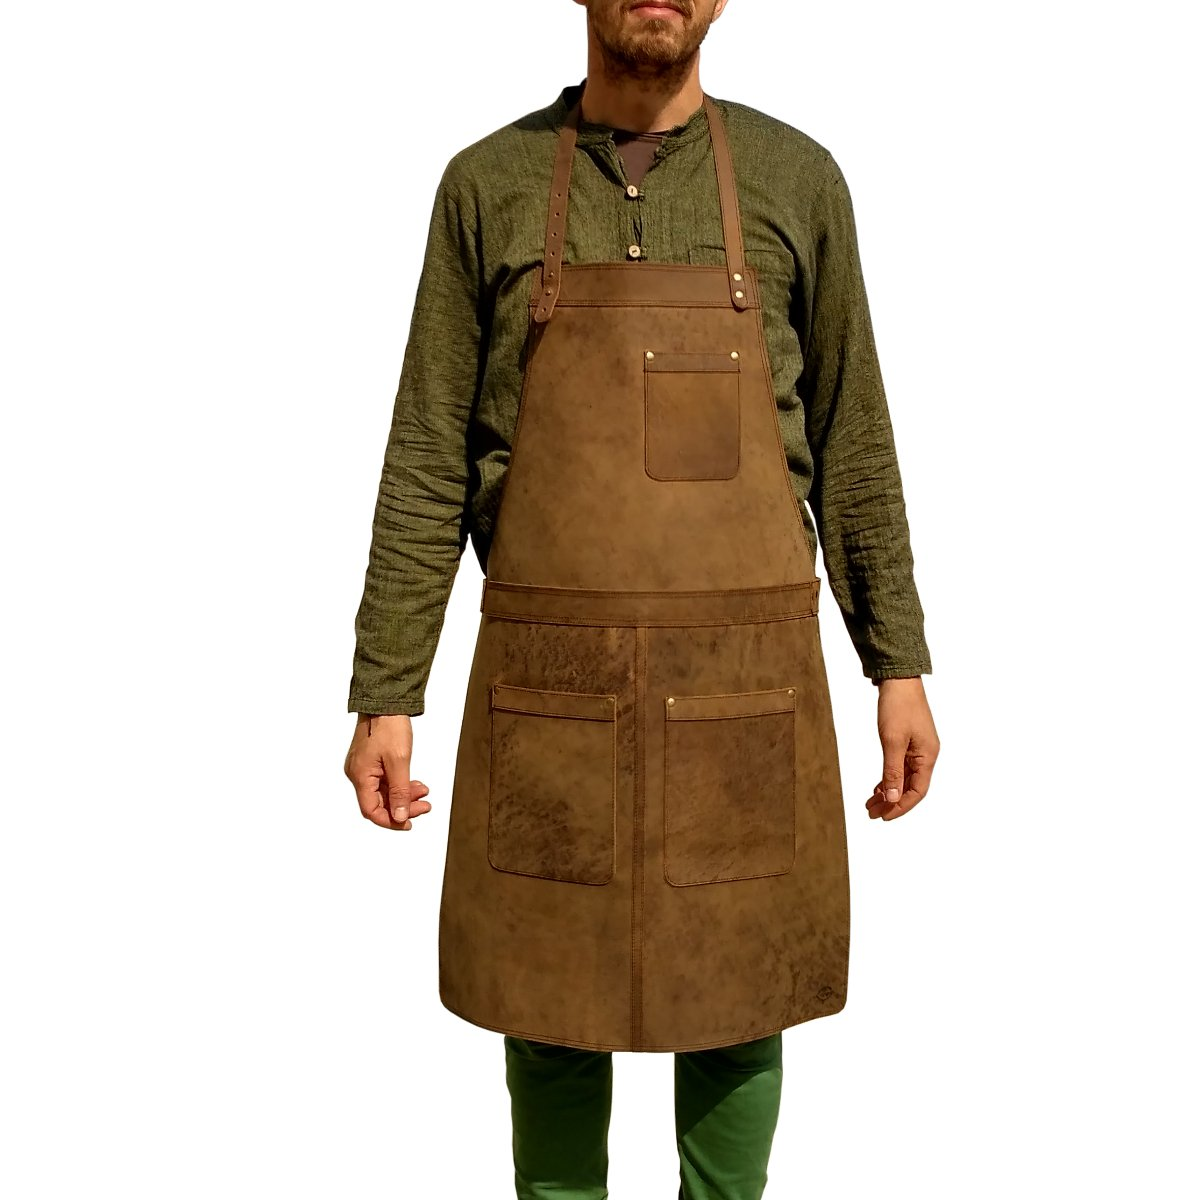 Ultimate Leather Apron for Professionals. from One Leaf (Brass Color Hardware)